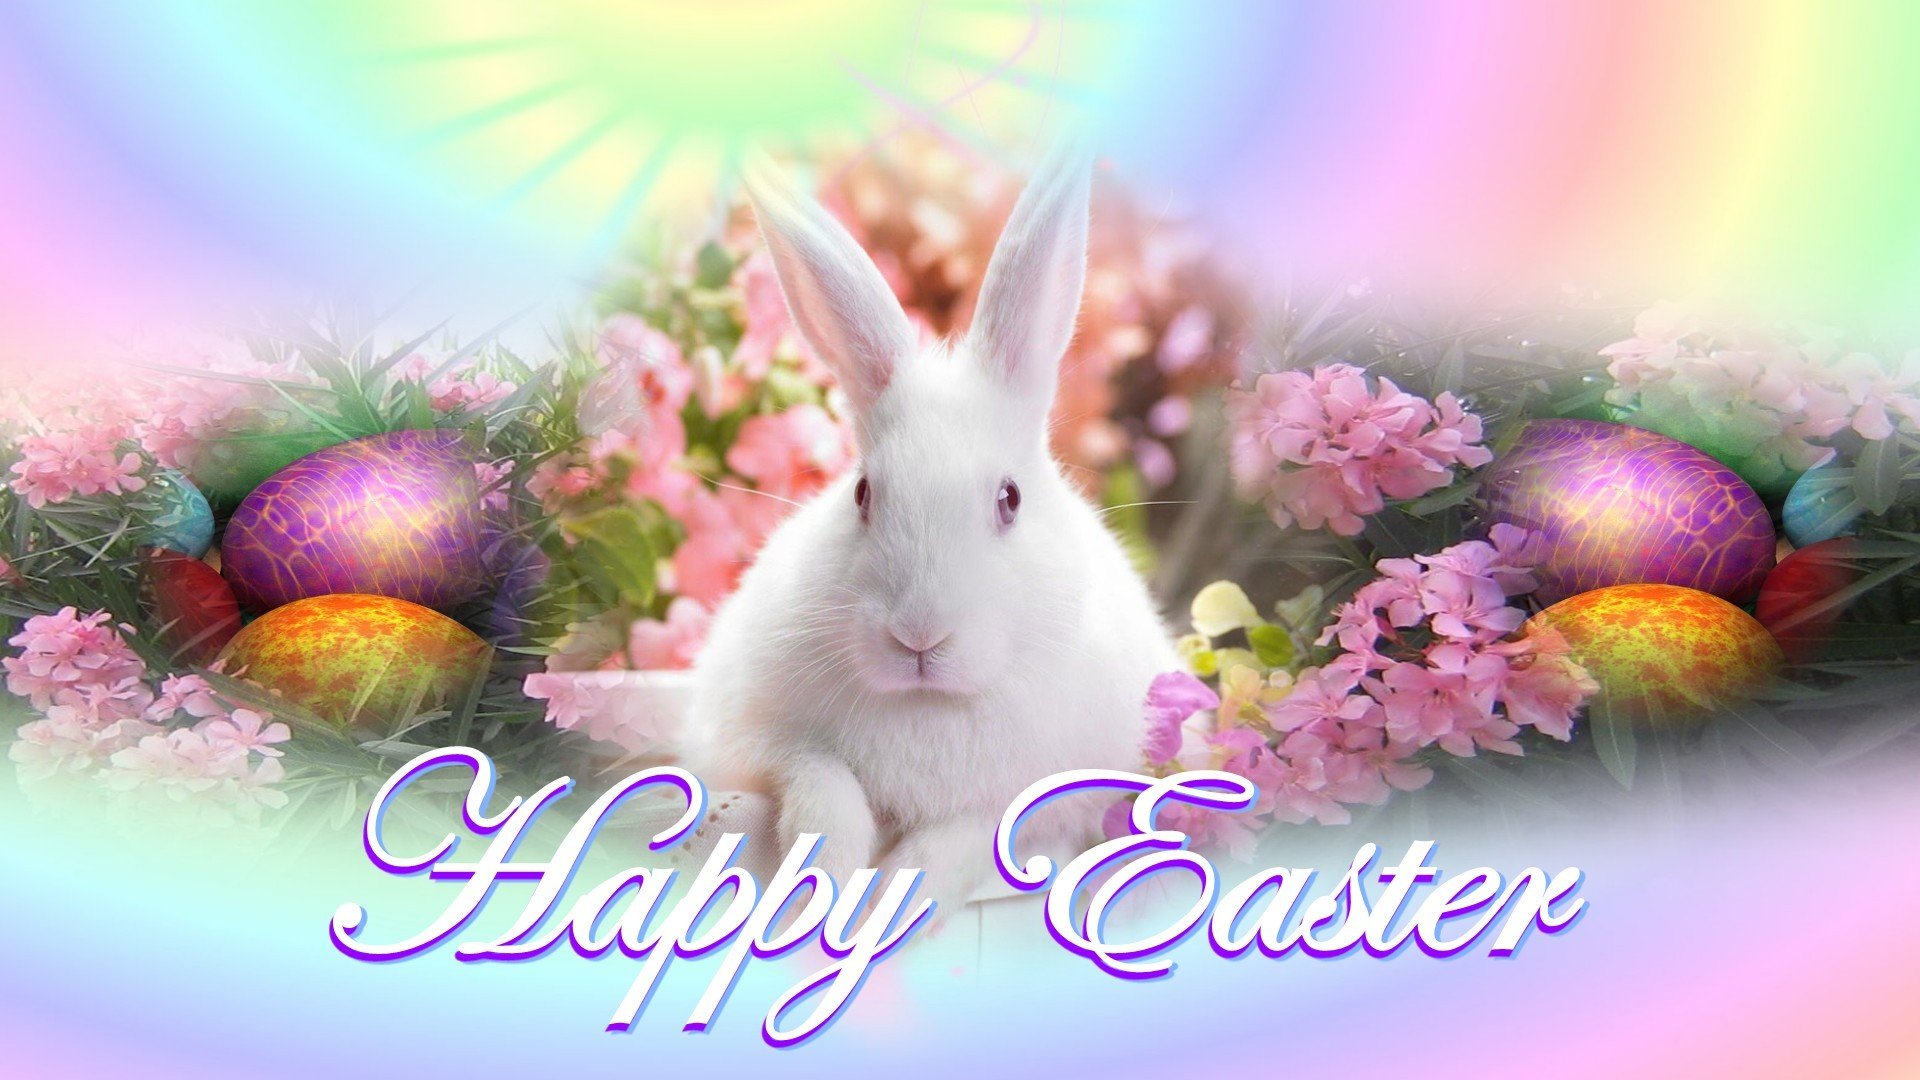 Free Easter Desktop Wallpaper